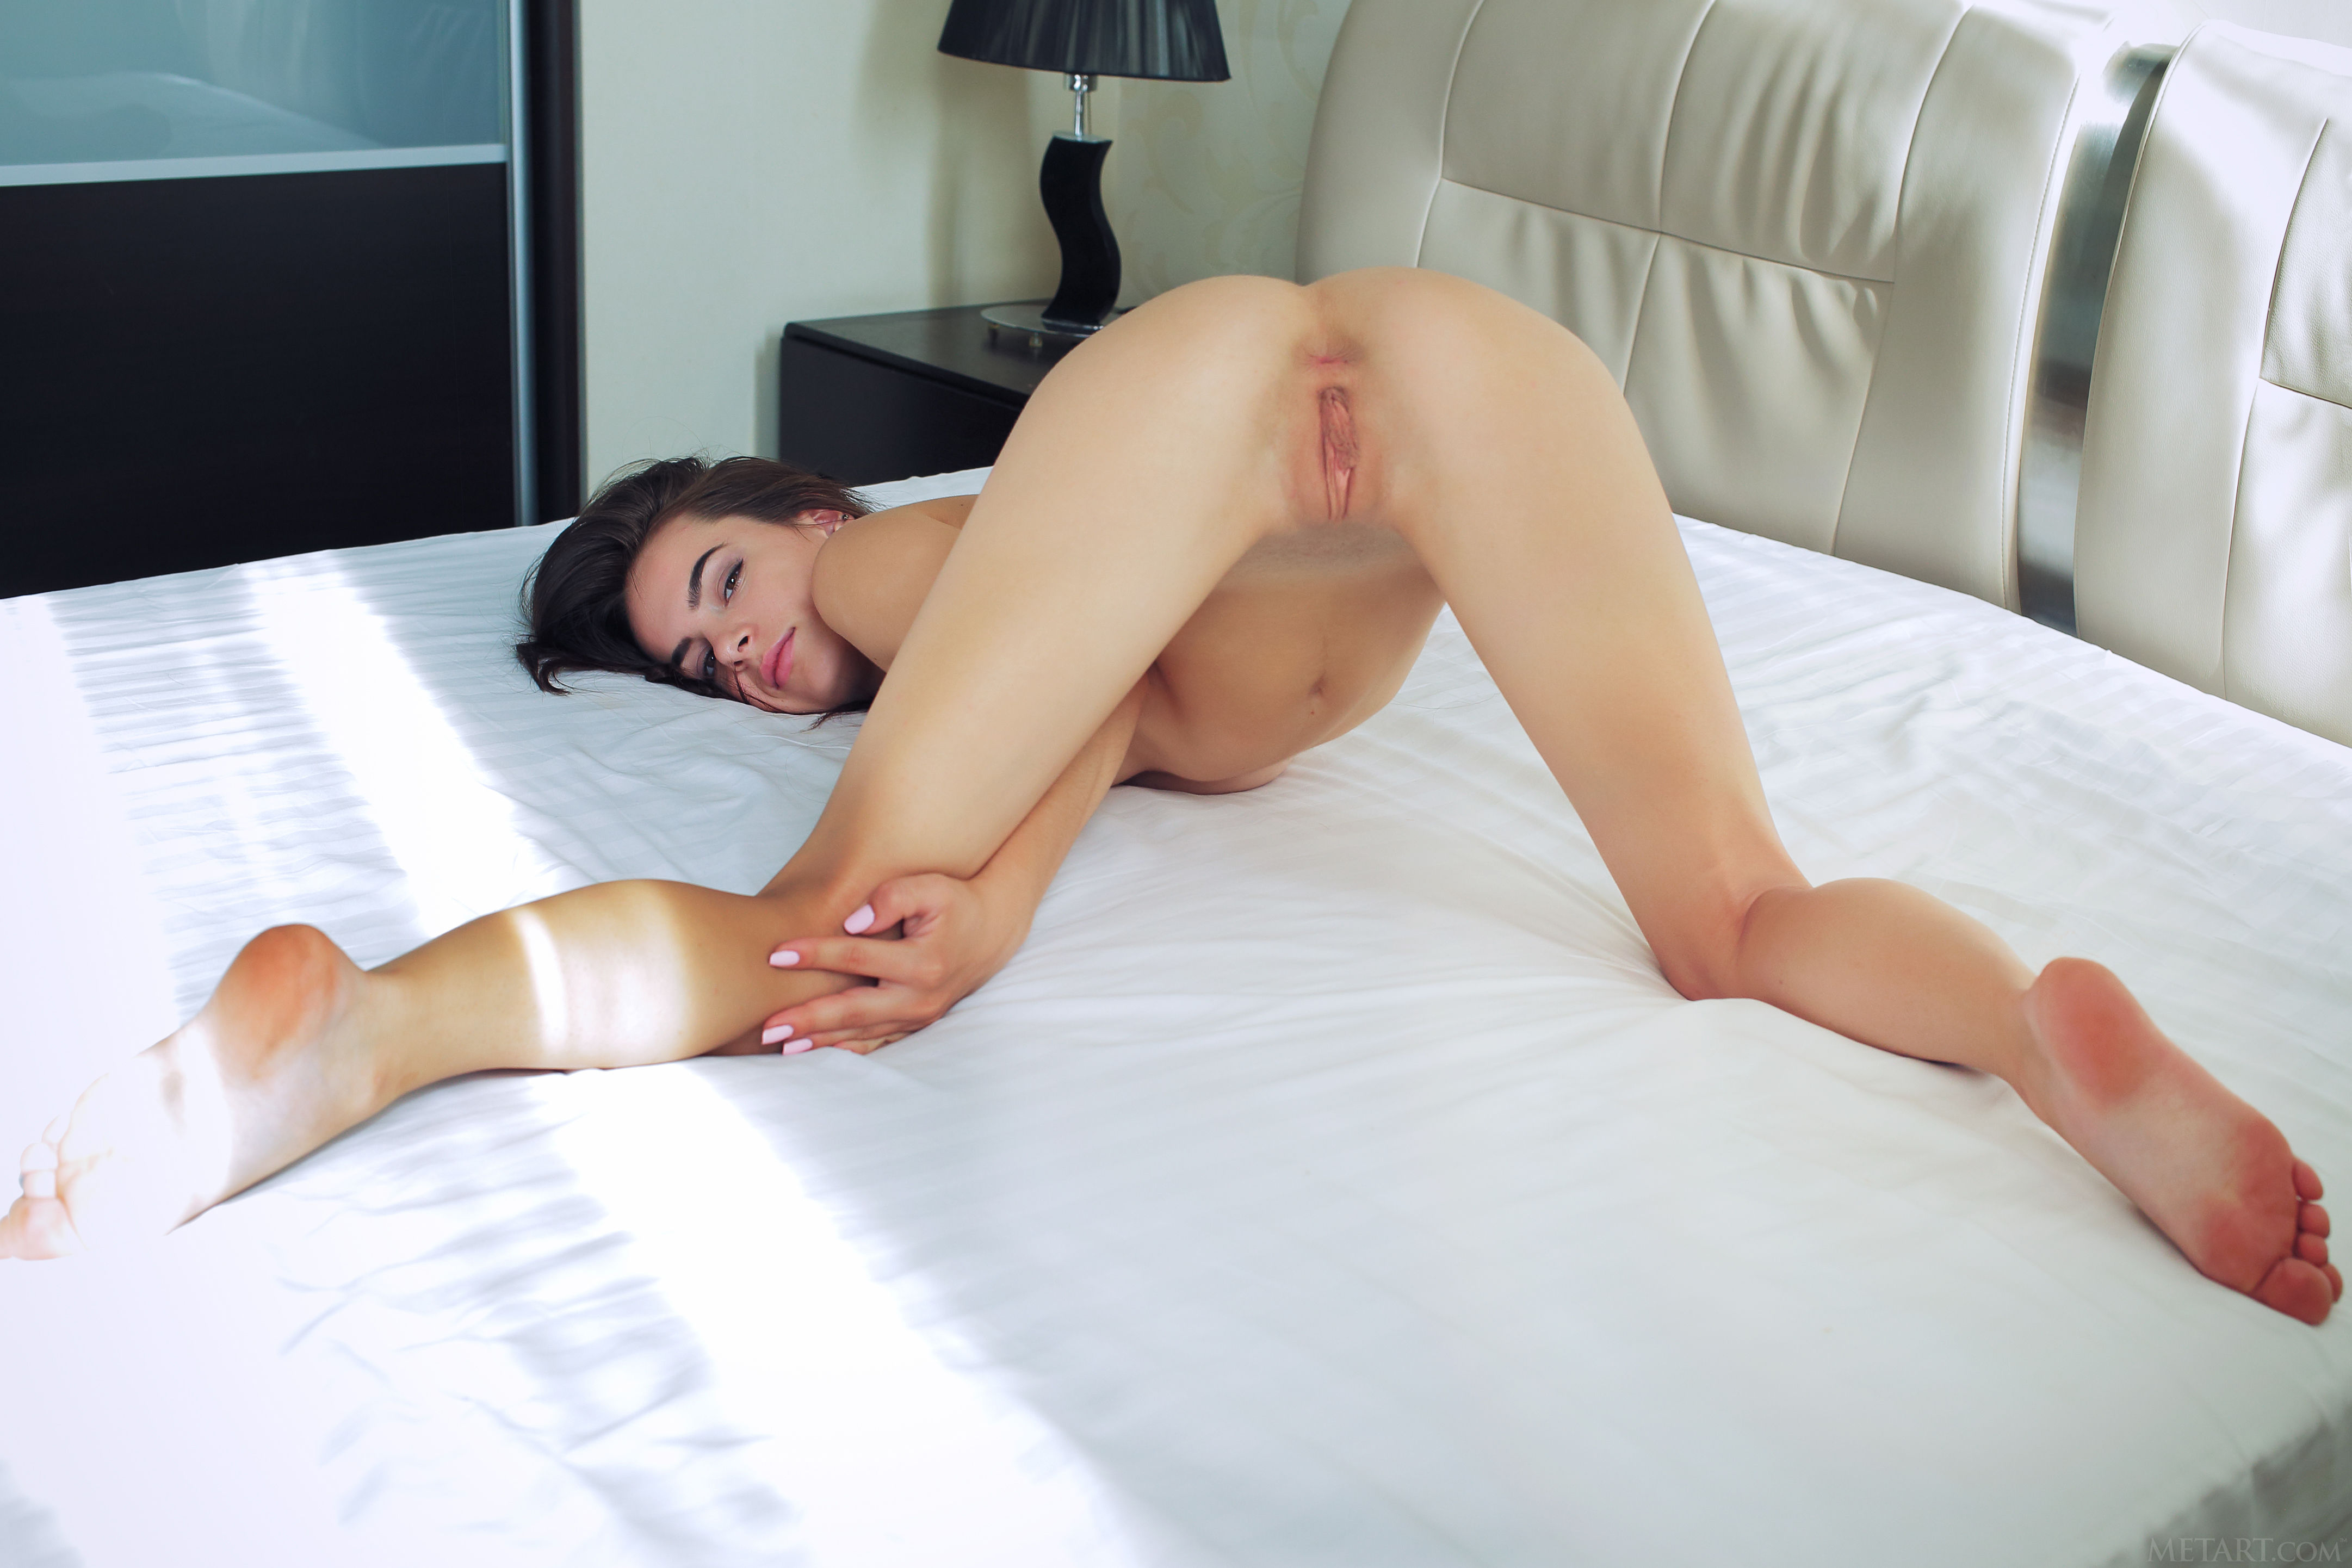 show magazine see their latest pics and videos